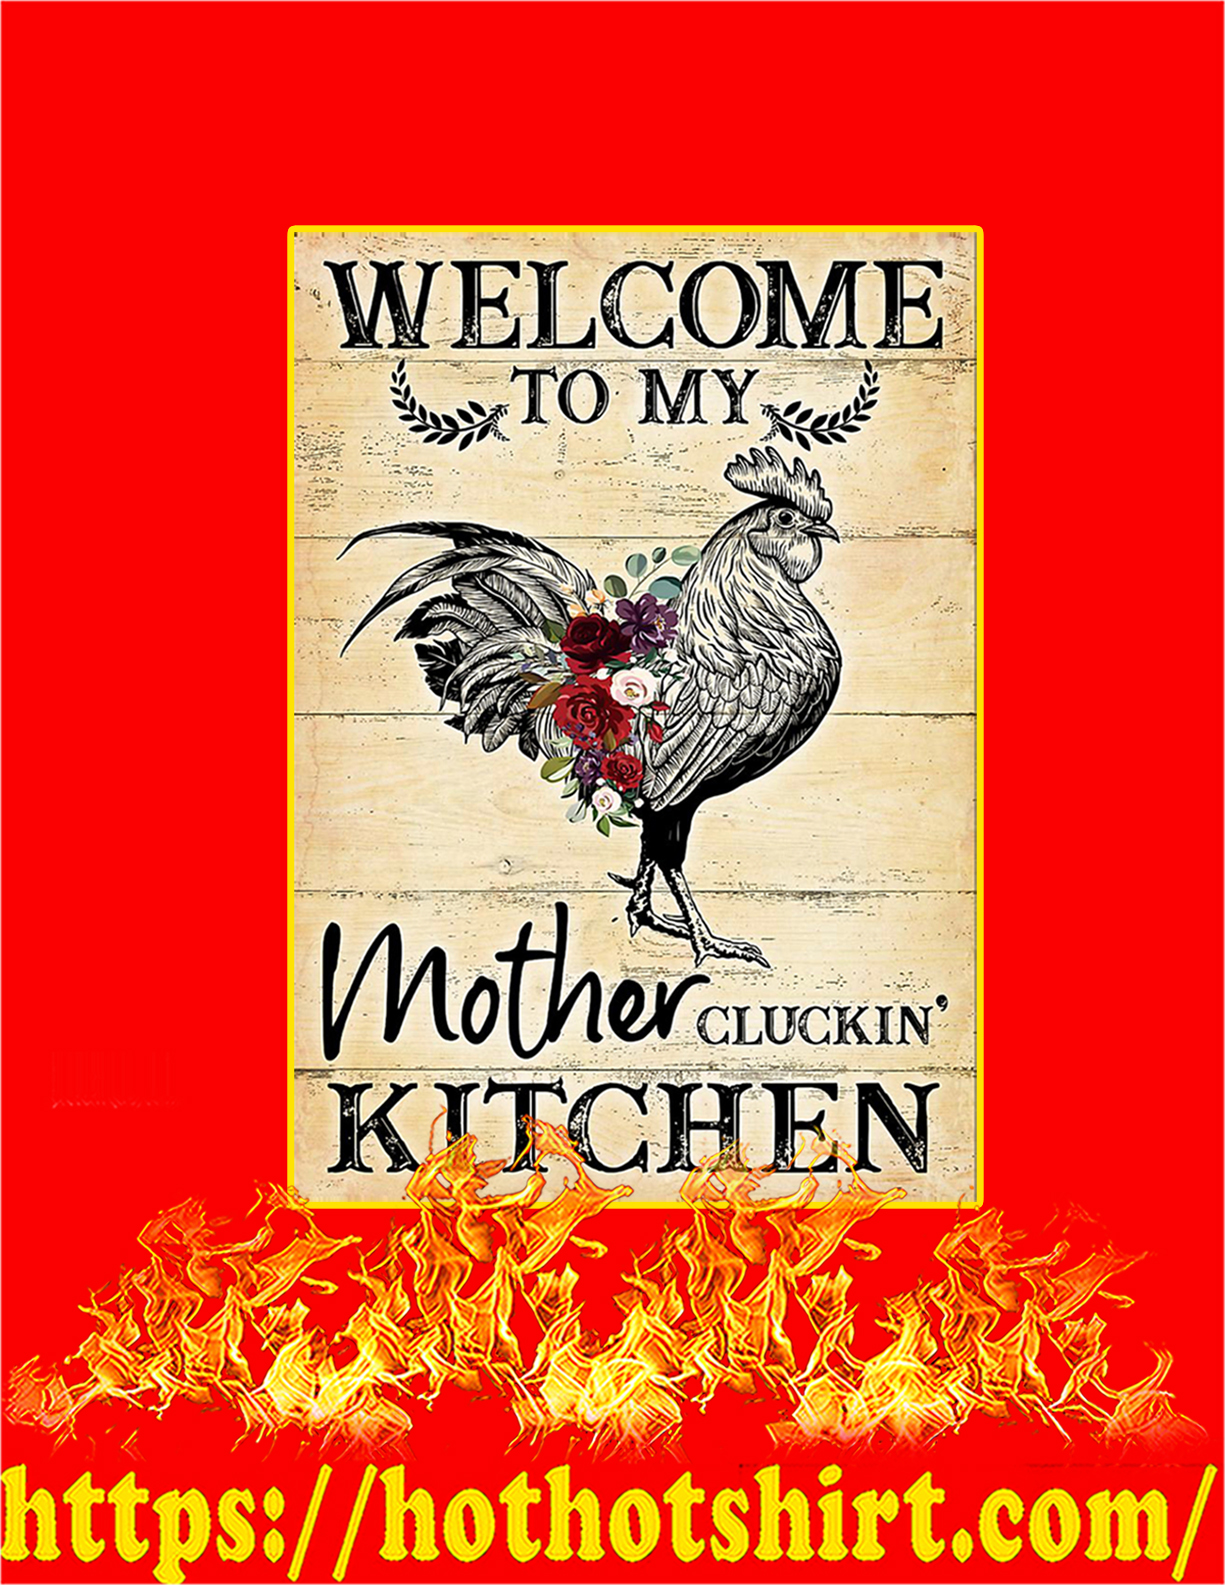 Welcome to my mother cluckin kitchen poster - A4